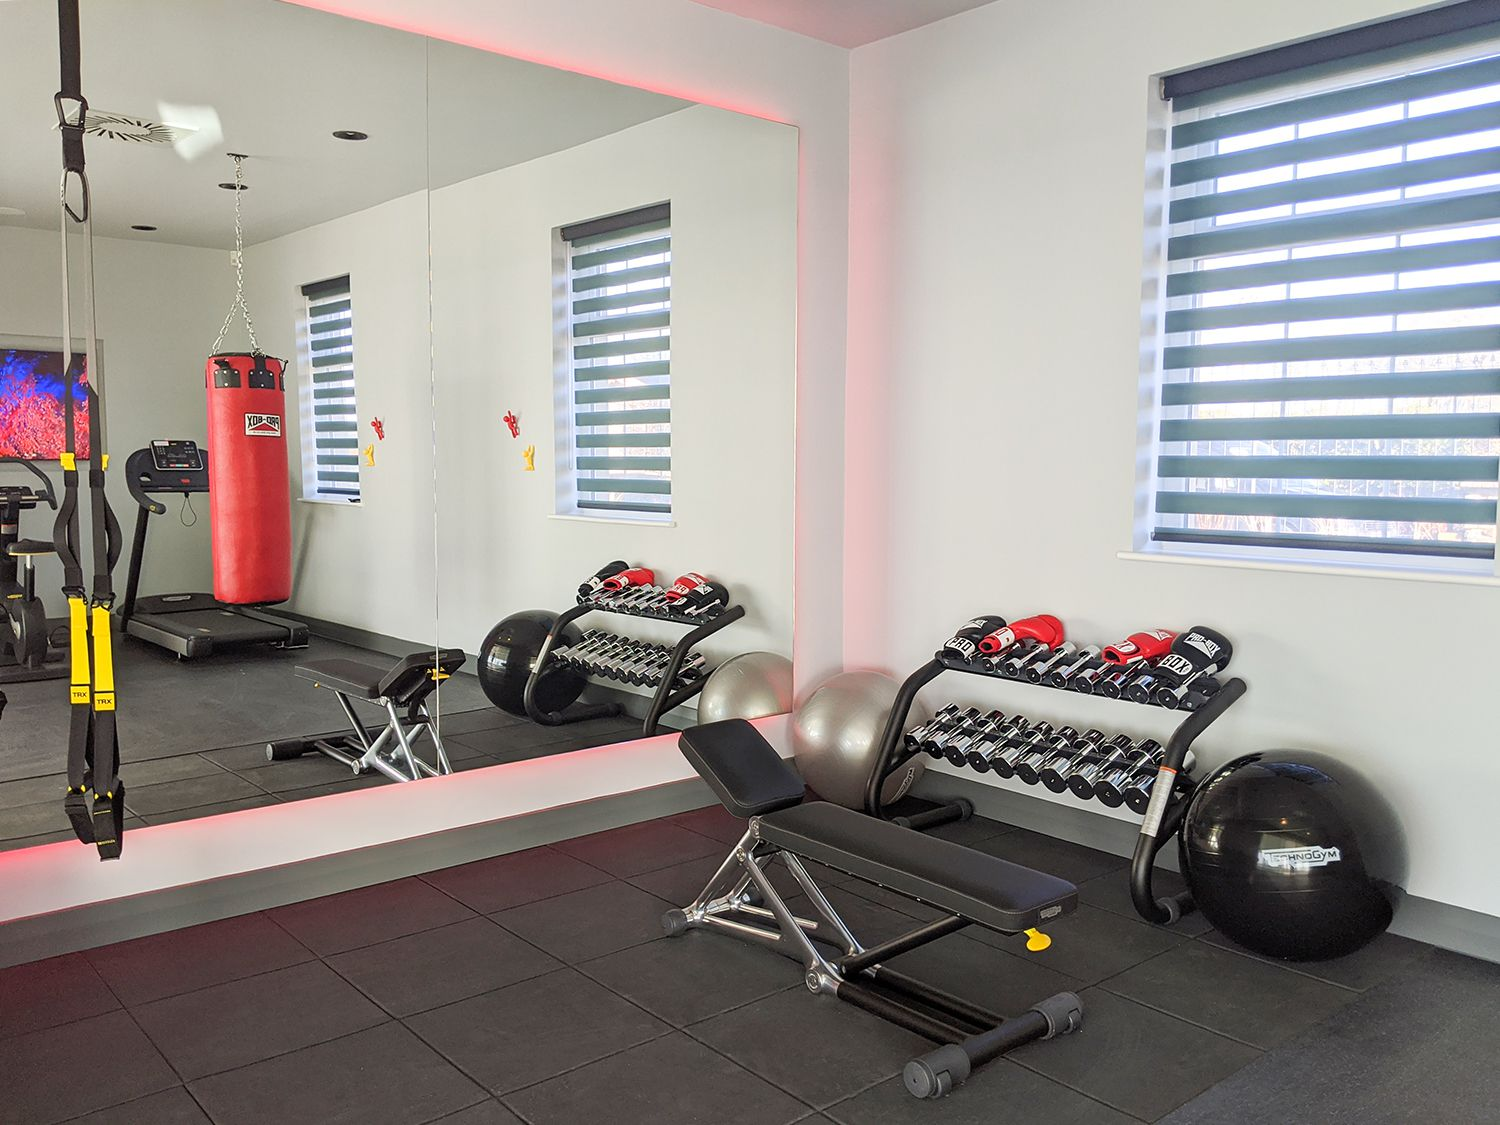 A photo of the corner of the gym, showing the punchbag and some of the equipment.